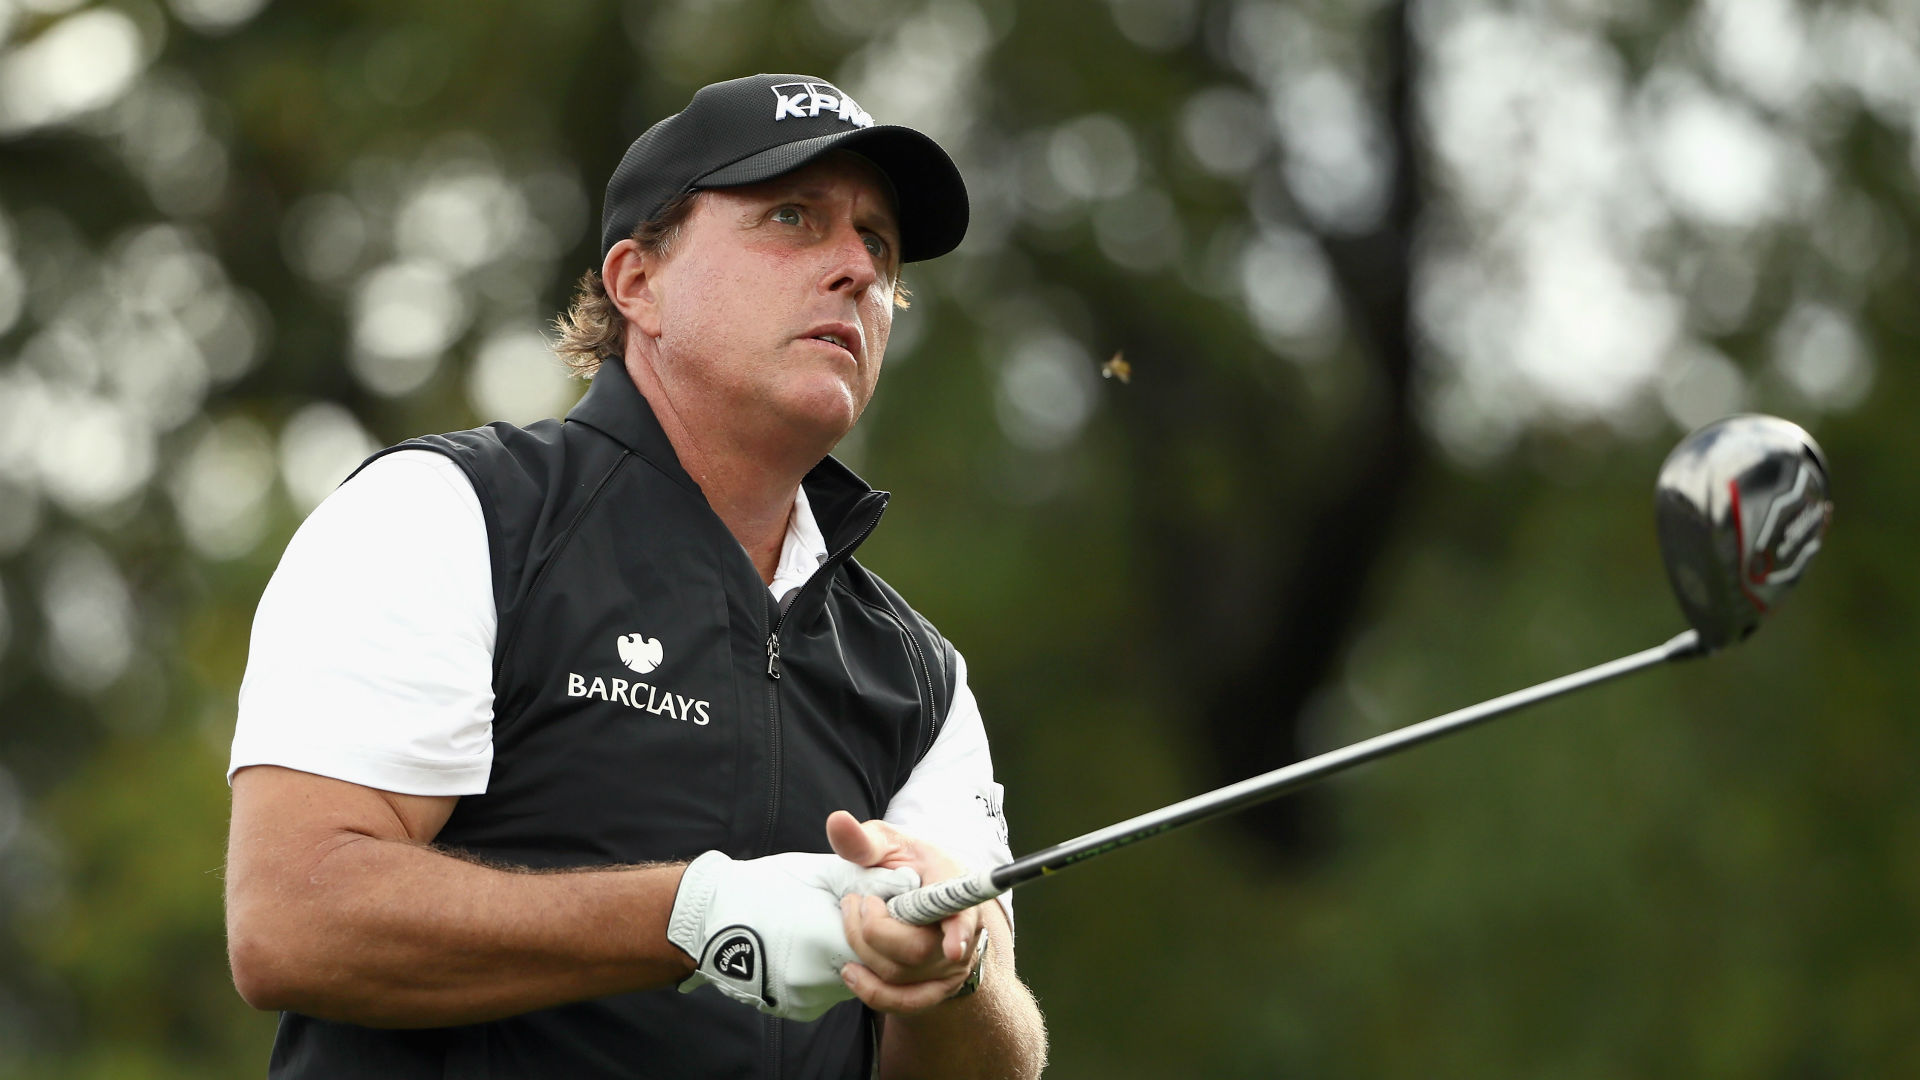 phil mickelson - photo #13